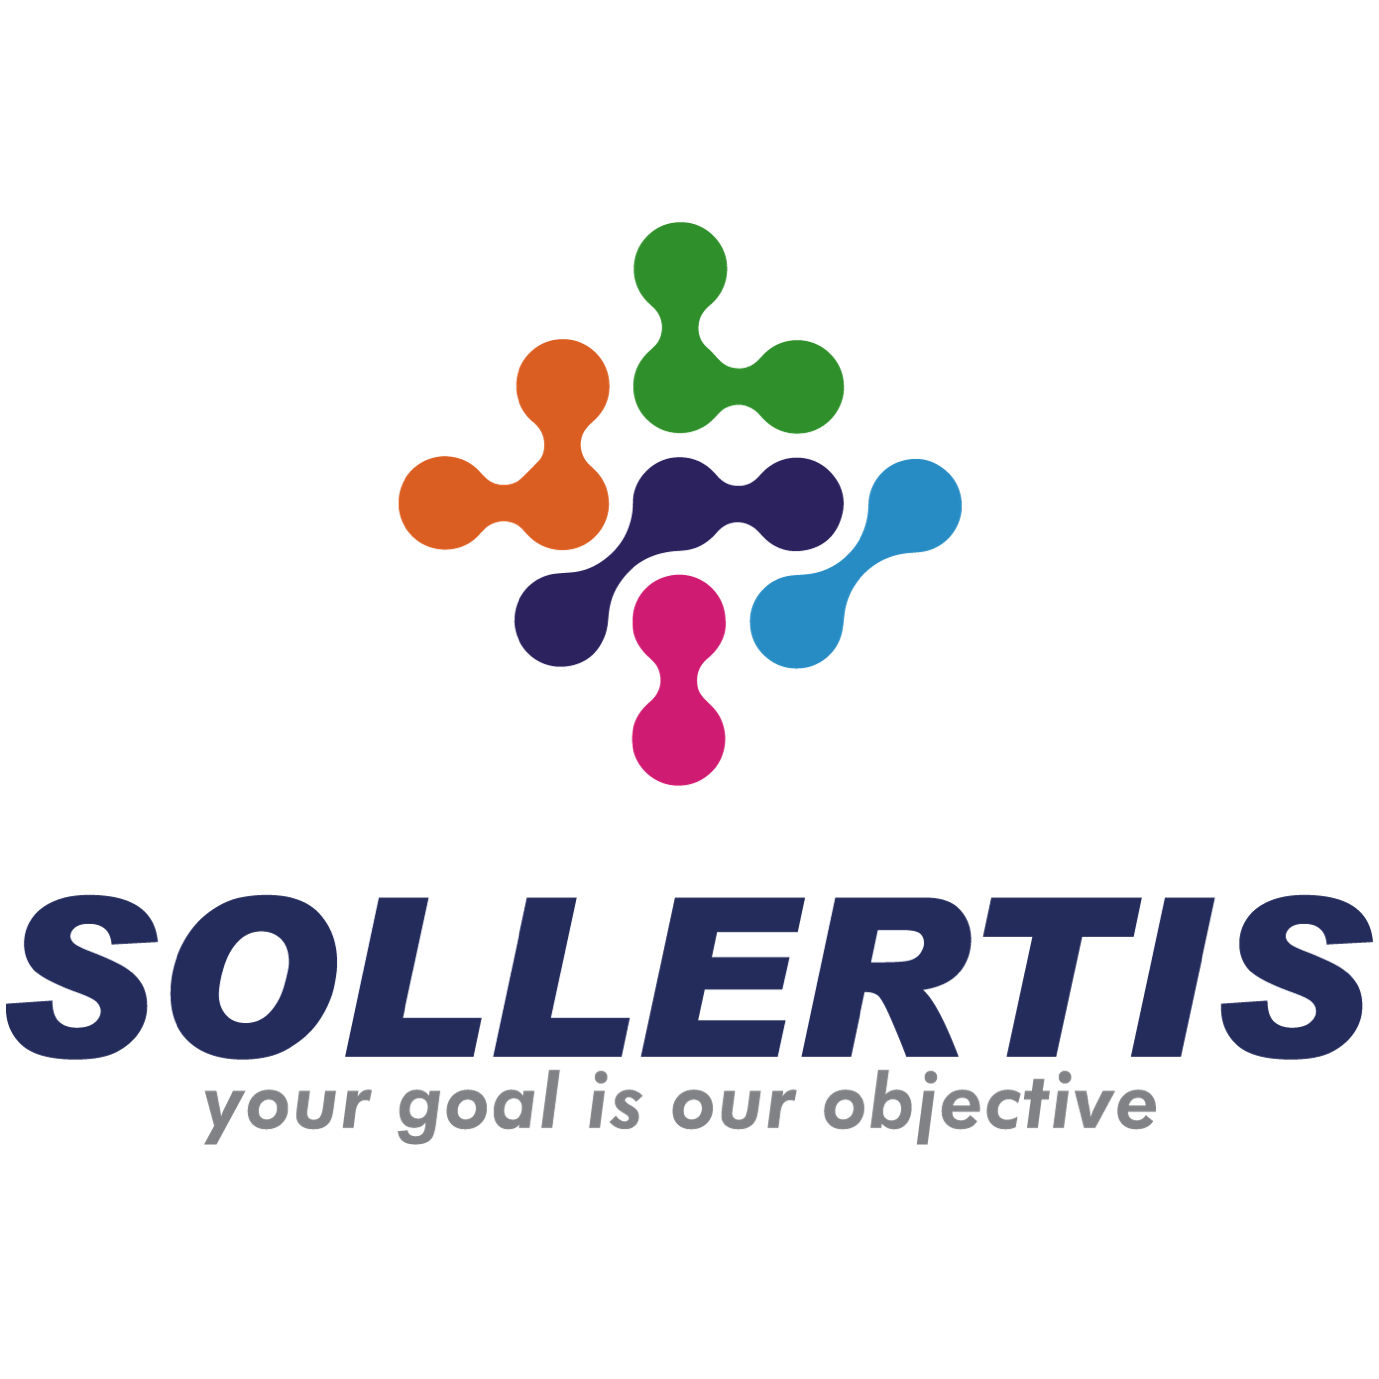 Sollertis Logo links above